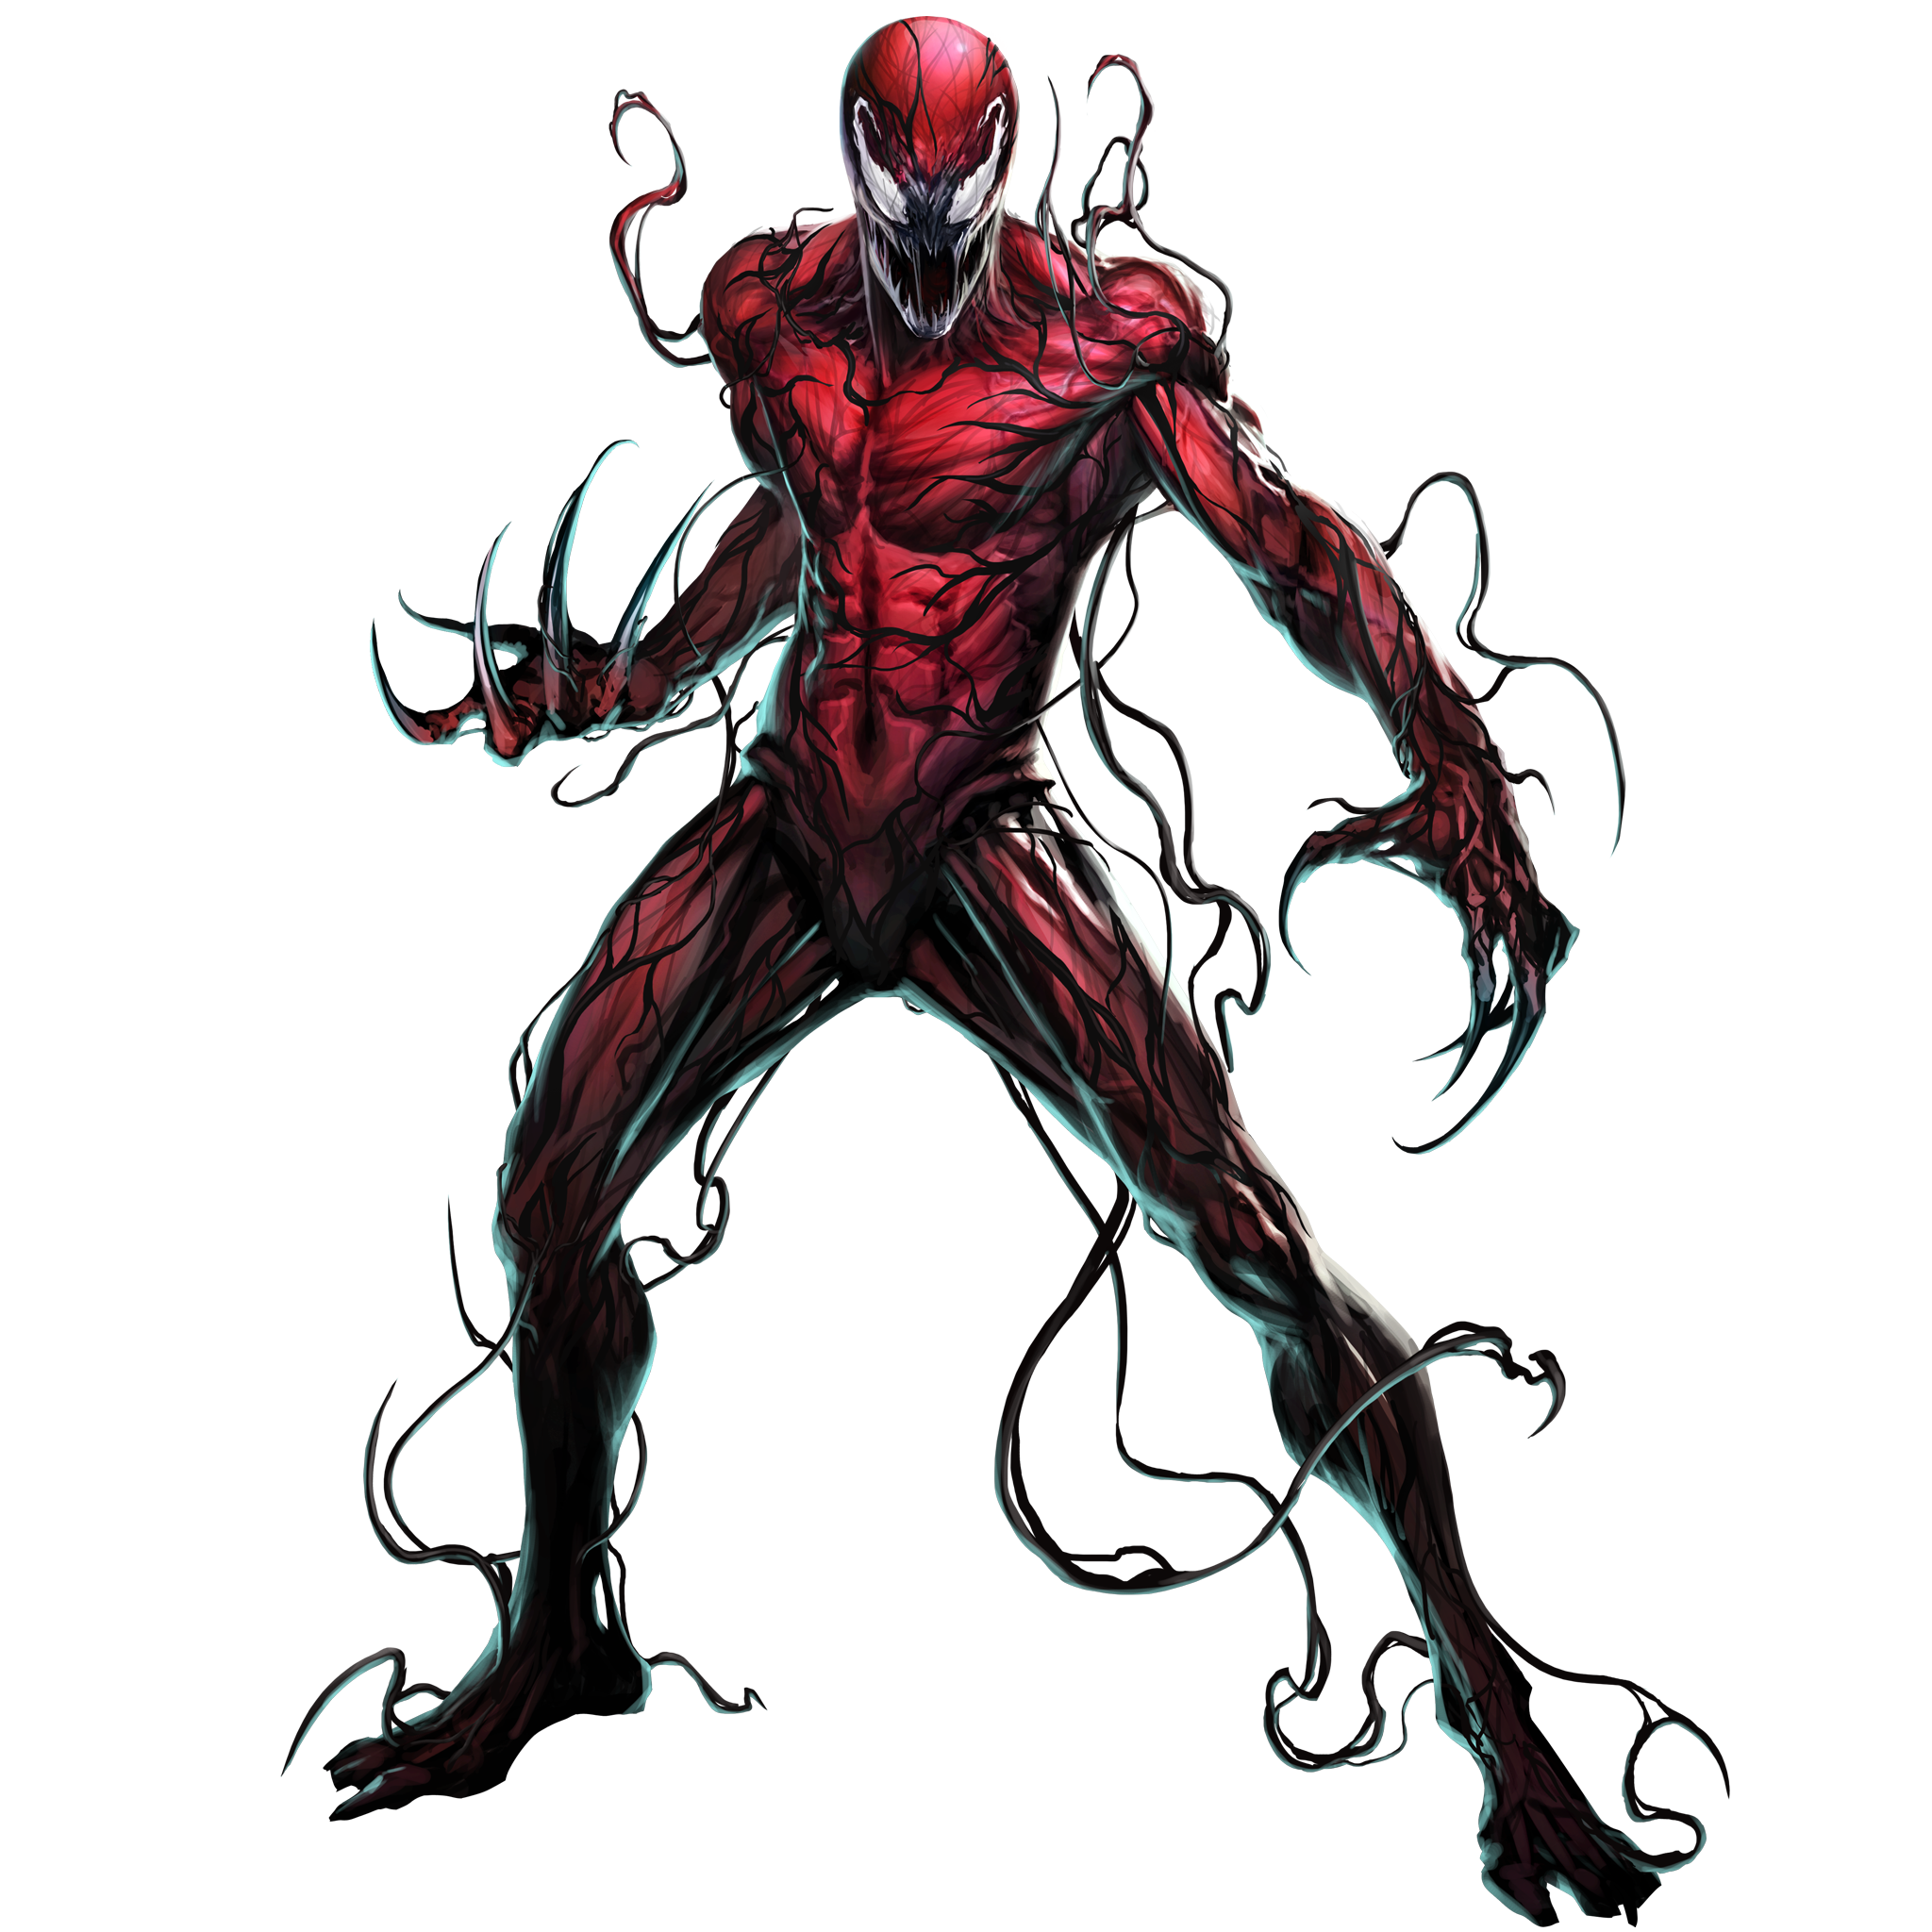 Carnage (The Amazing Spider-Man Video Games)